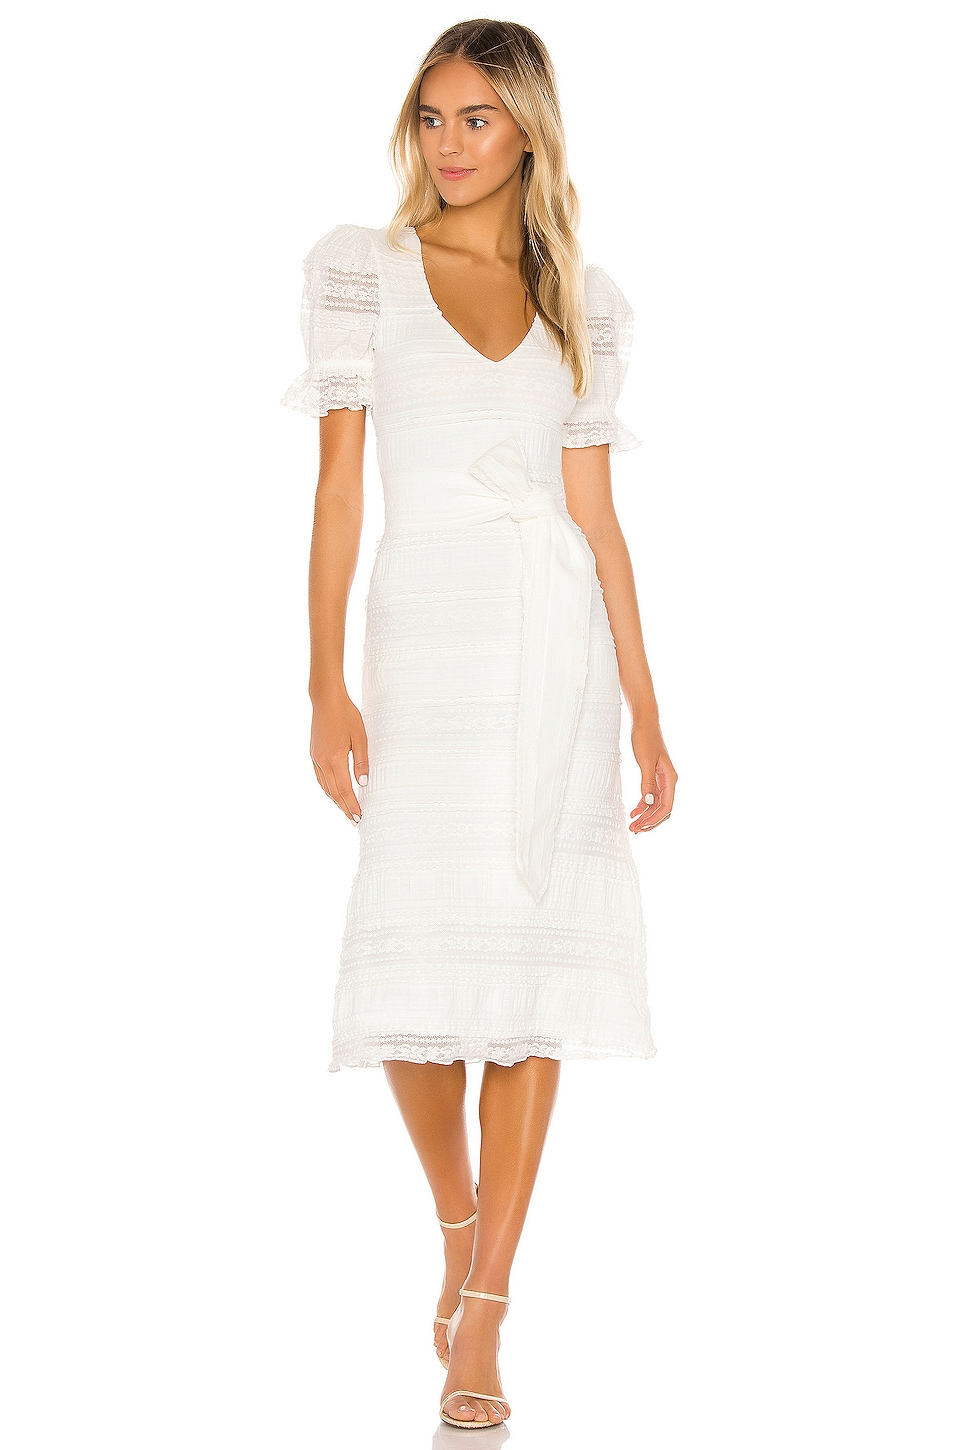 Quinn Midi Dress             Tularosa                                                                                                       CA$ 231.57 2